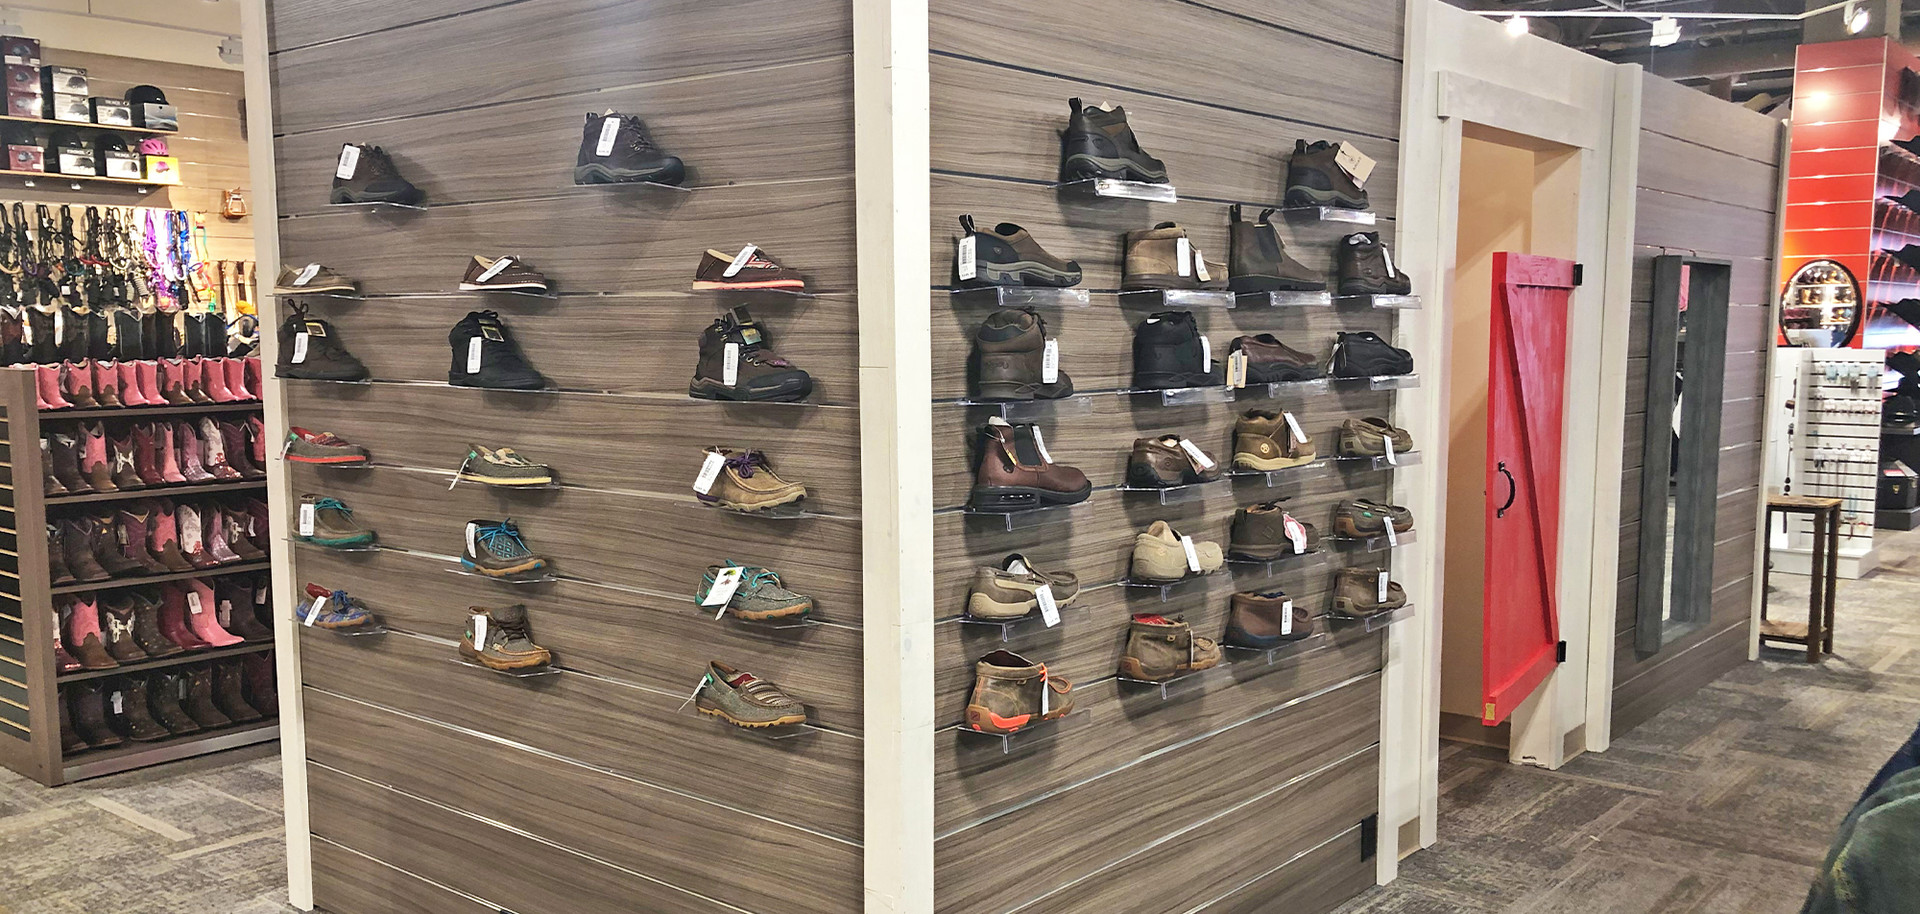 Changerooms and shoe display